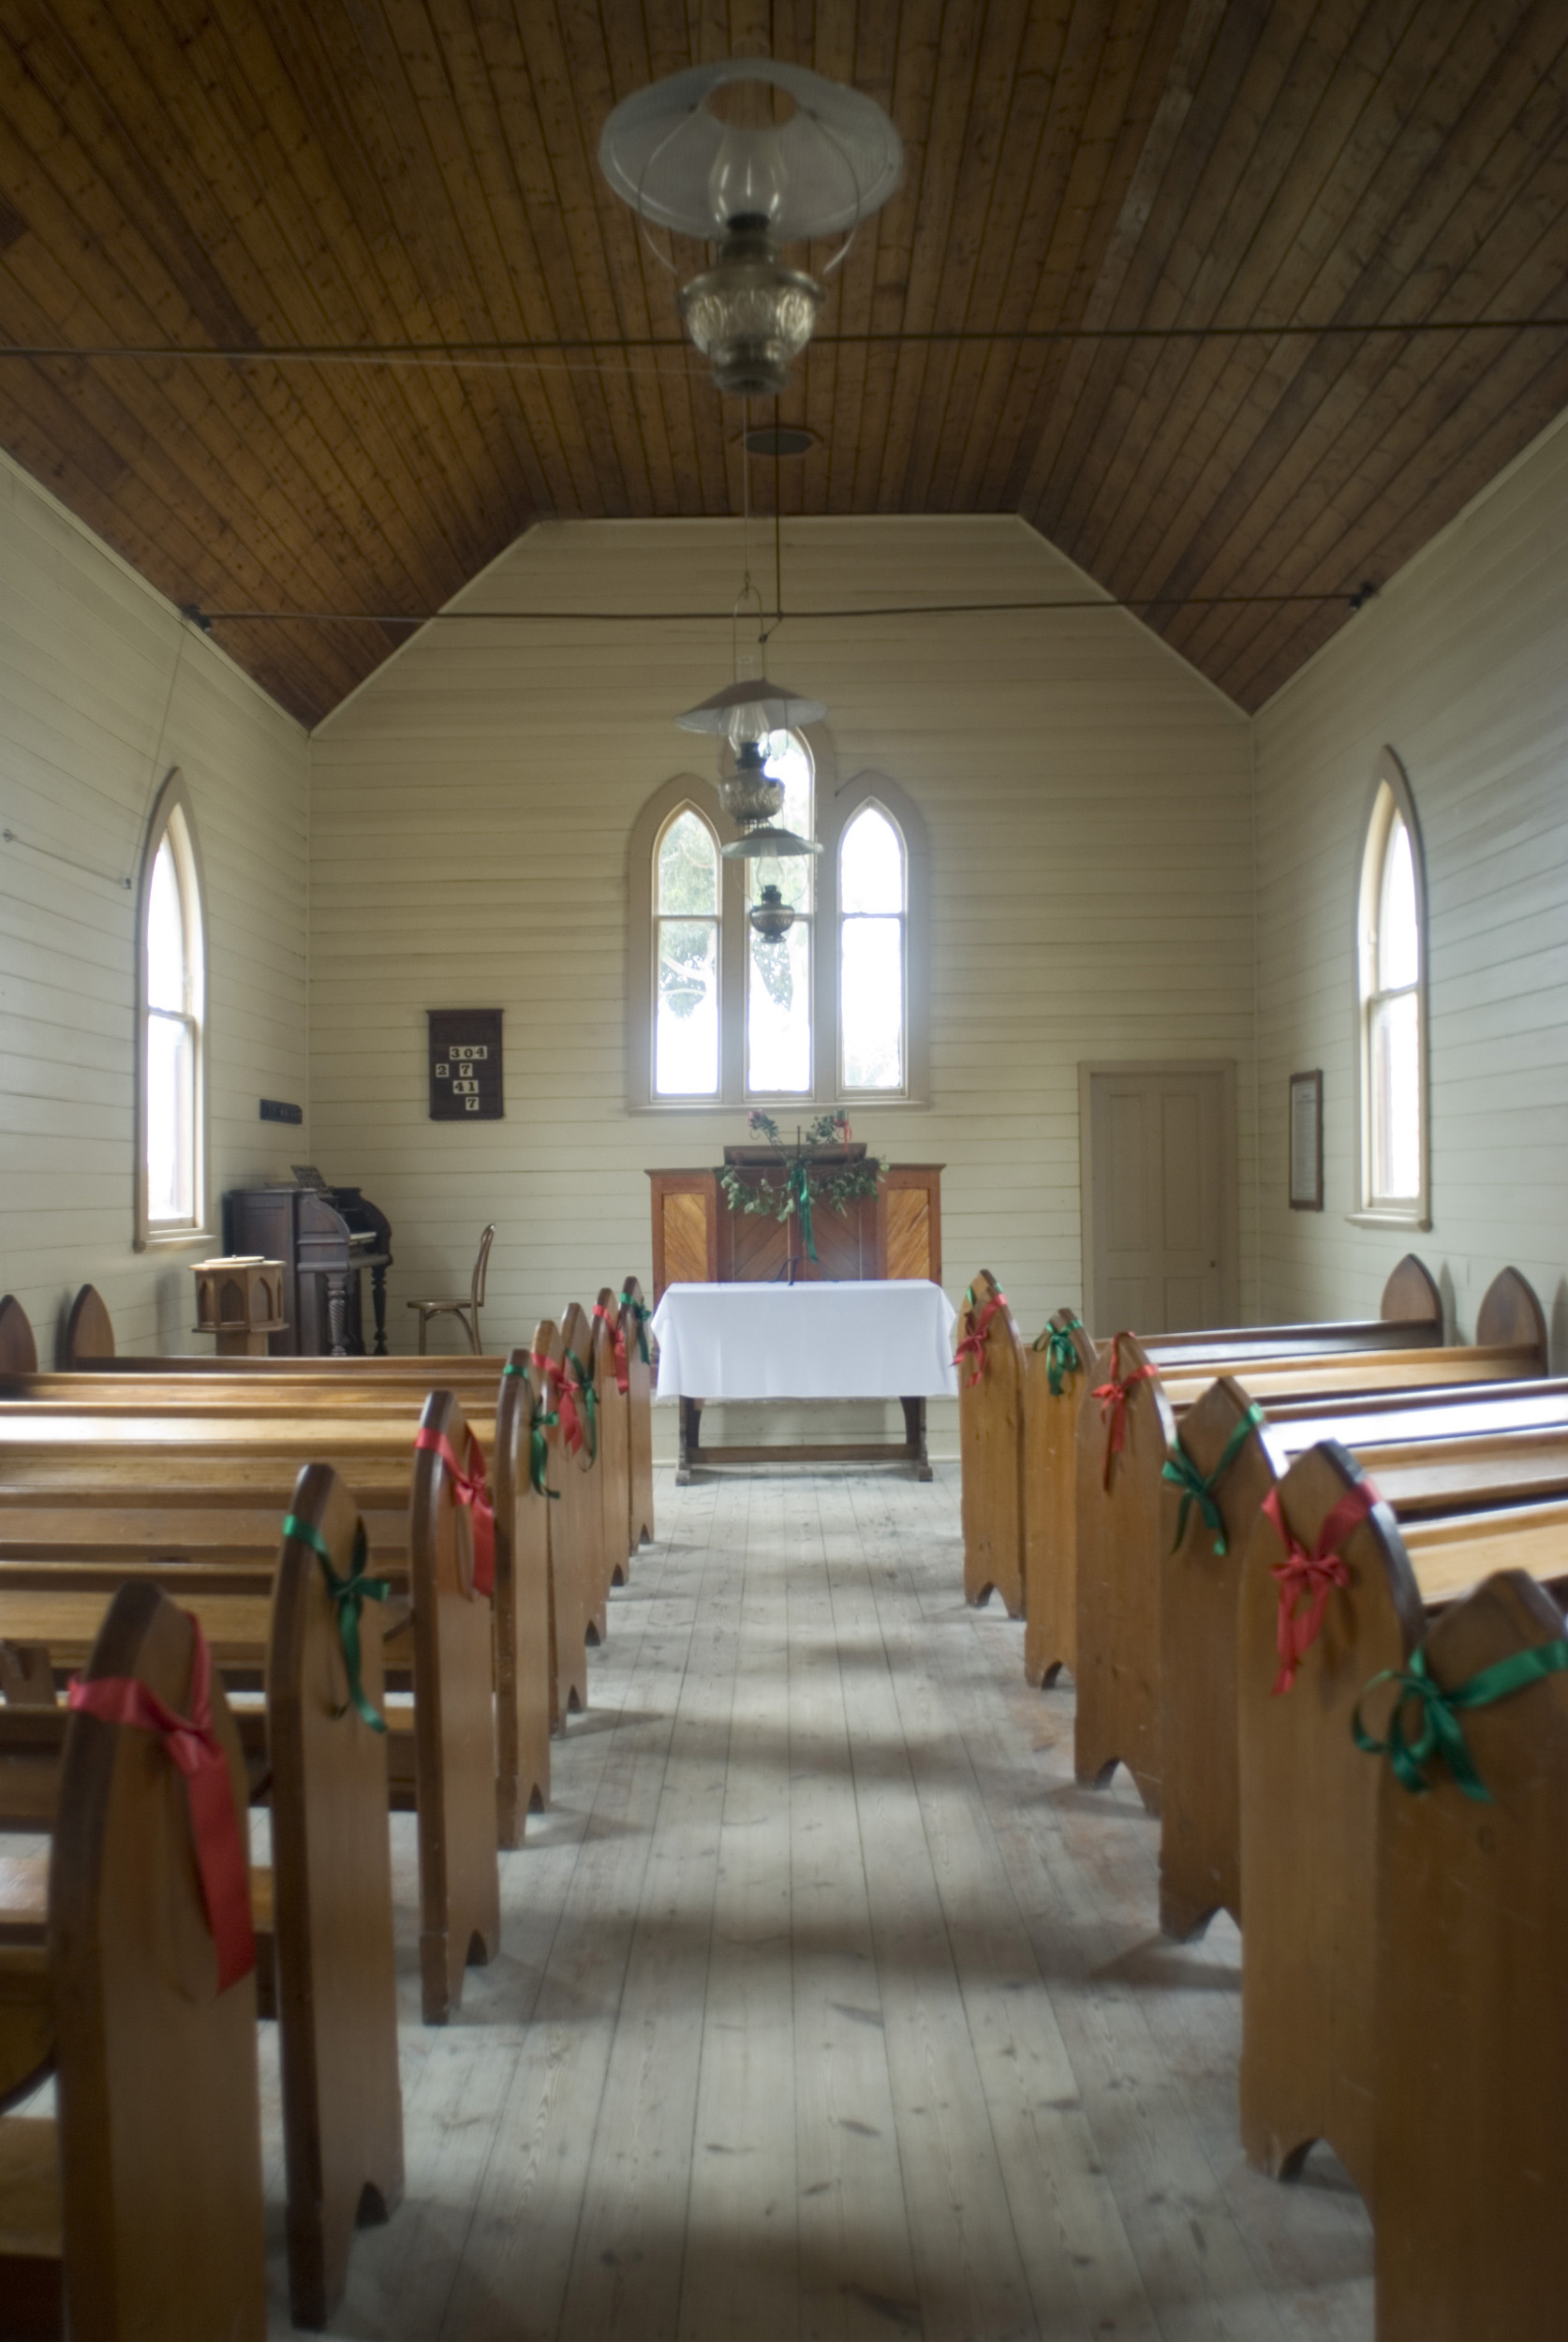 small_historic_church.jpg - Small historic church interior looking down the stone aisle past the wooden pews to the simple alter at the opposite end - non commerical use only